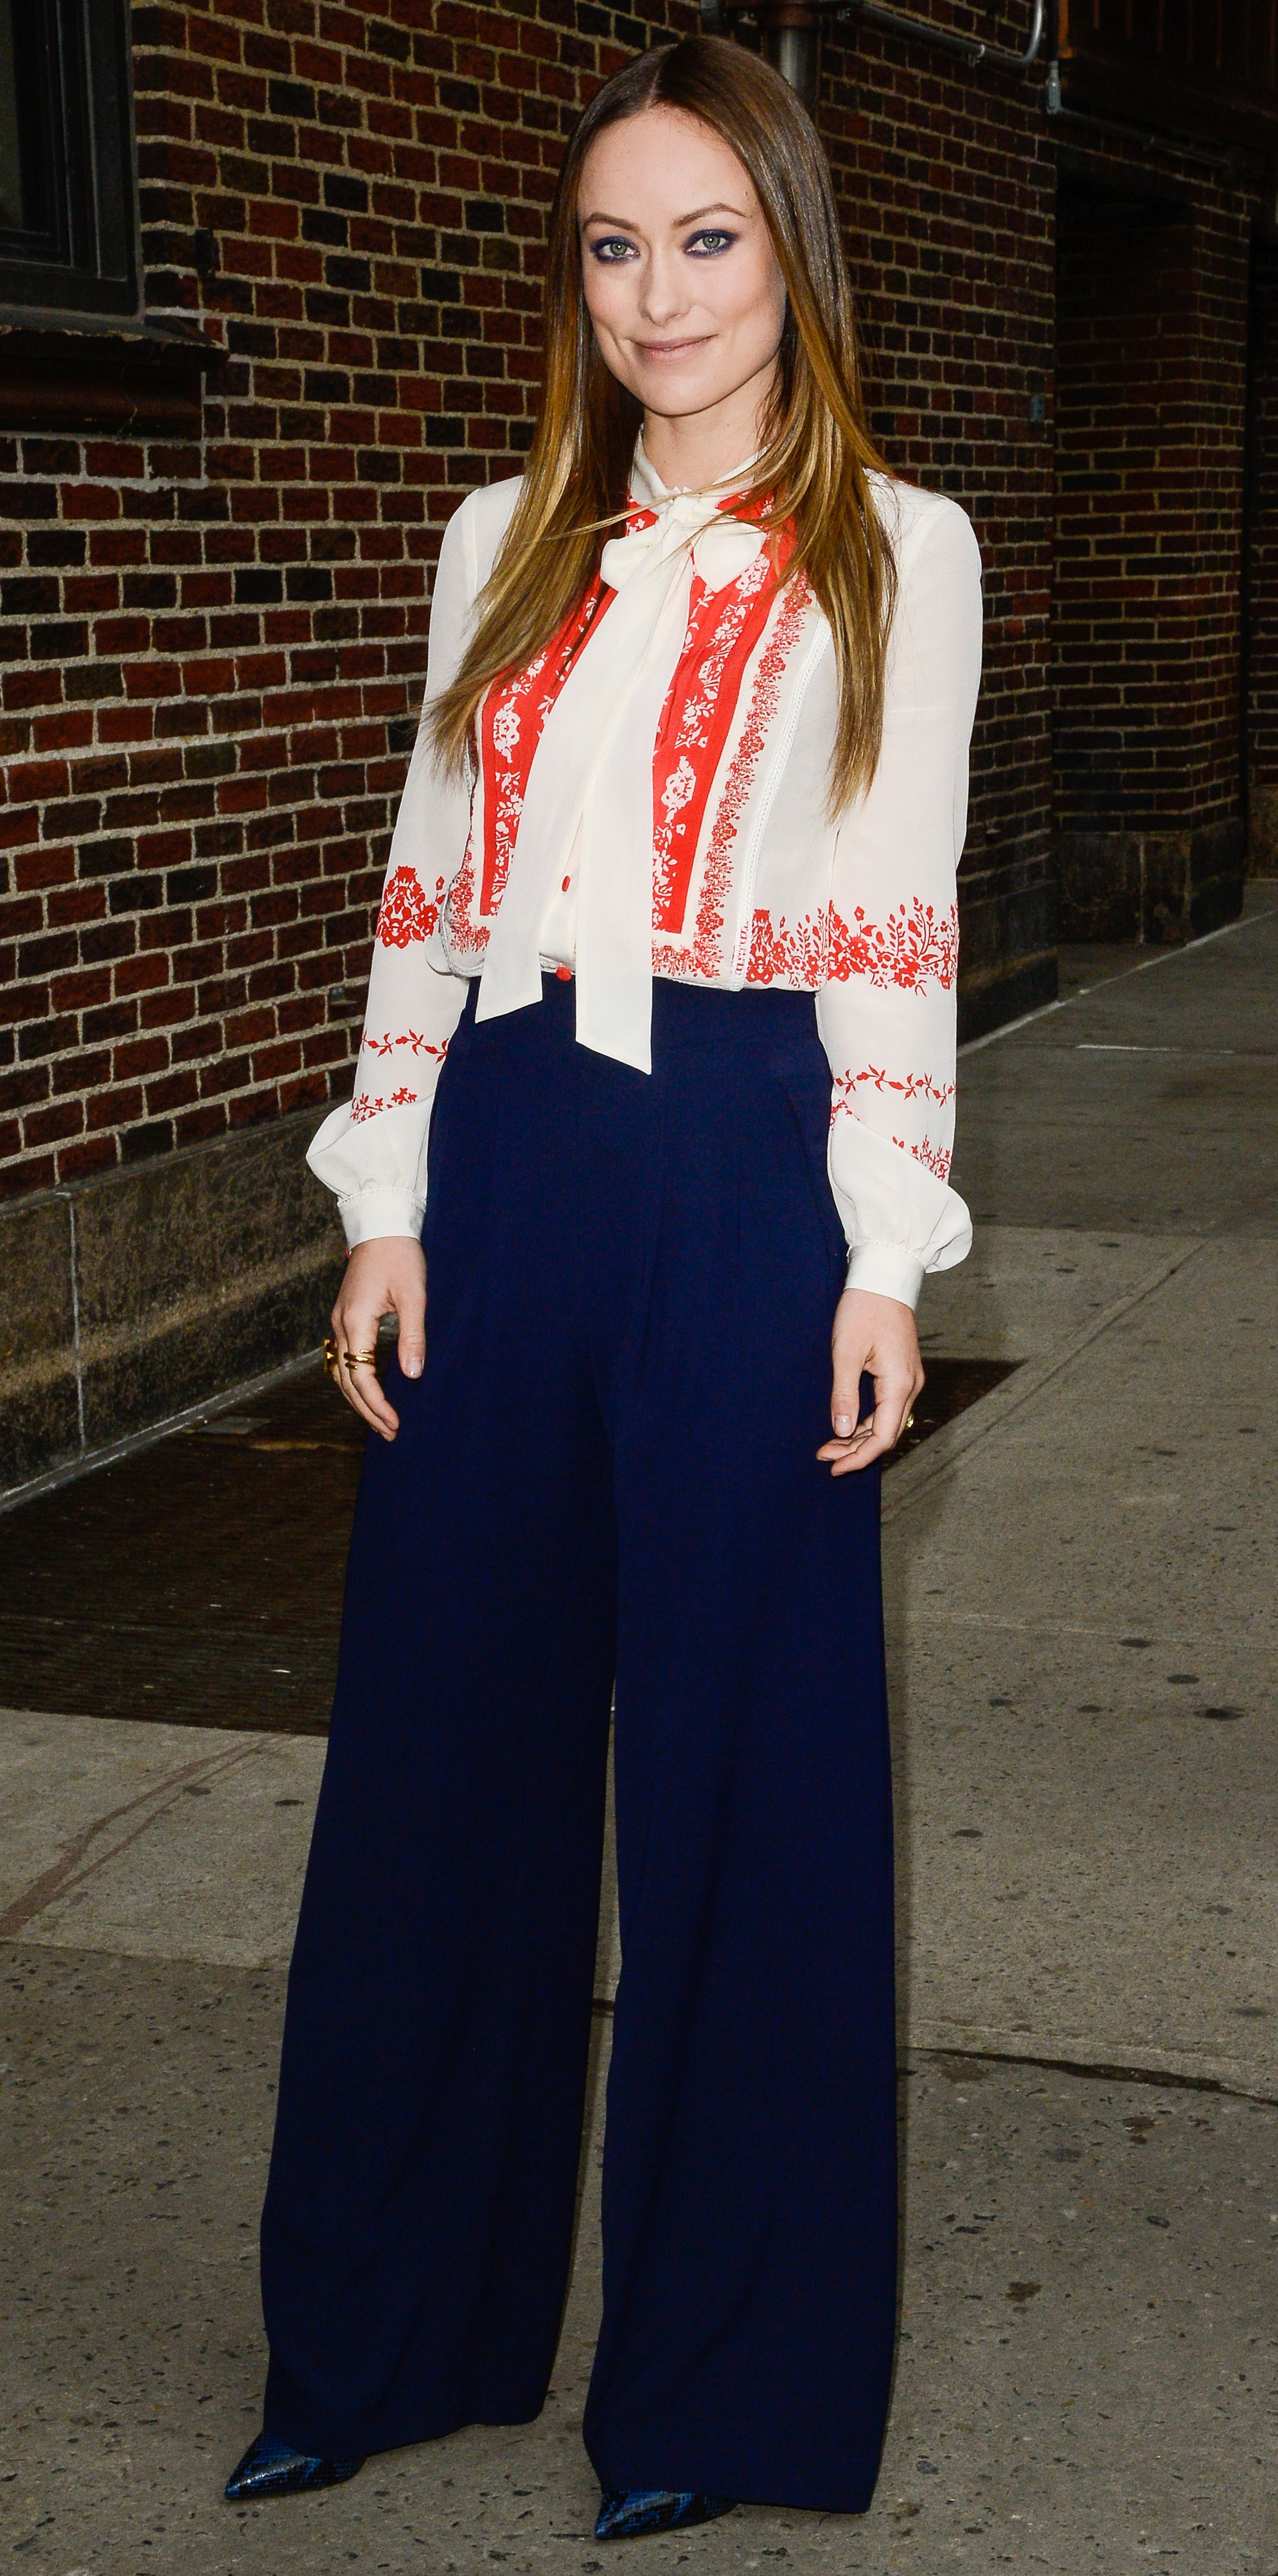 Wilde olivia look of the day 2019